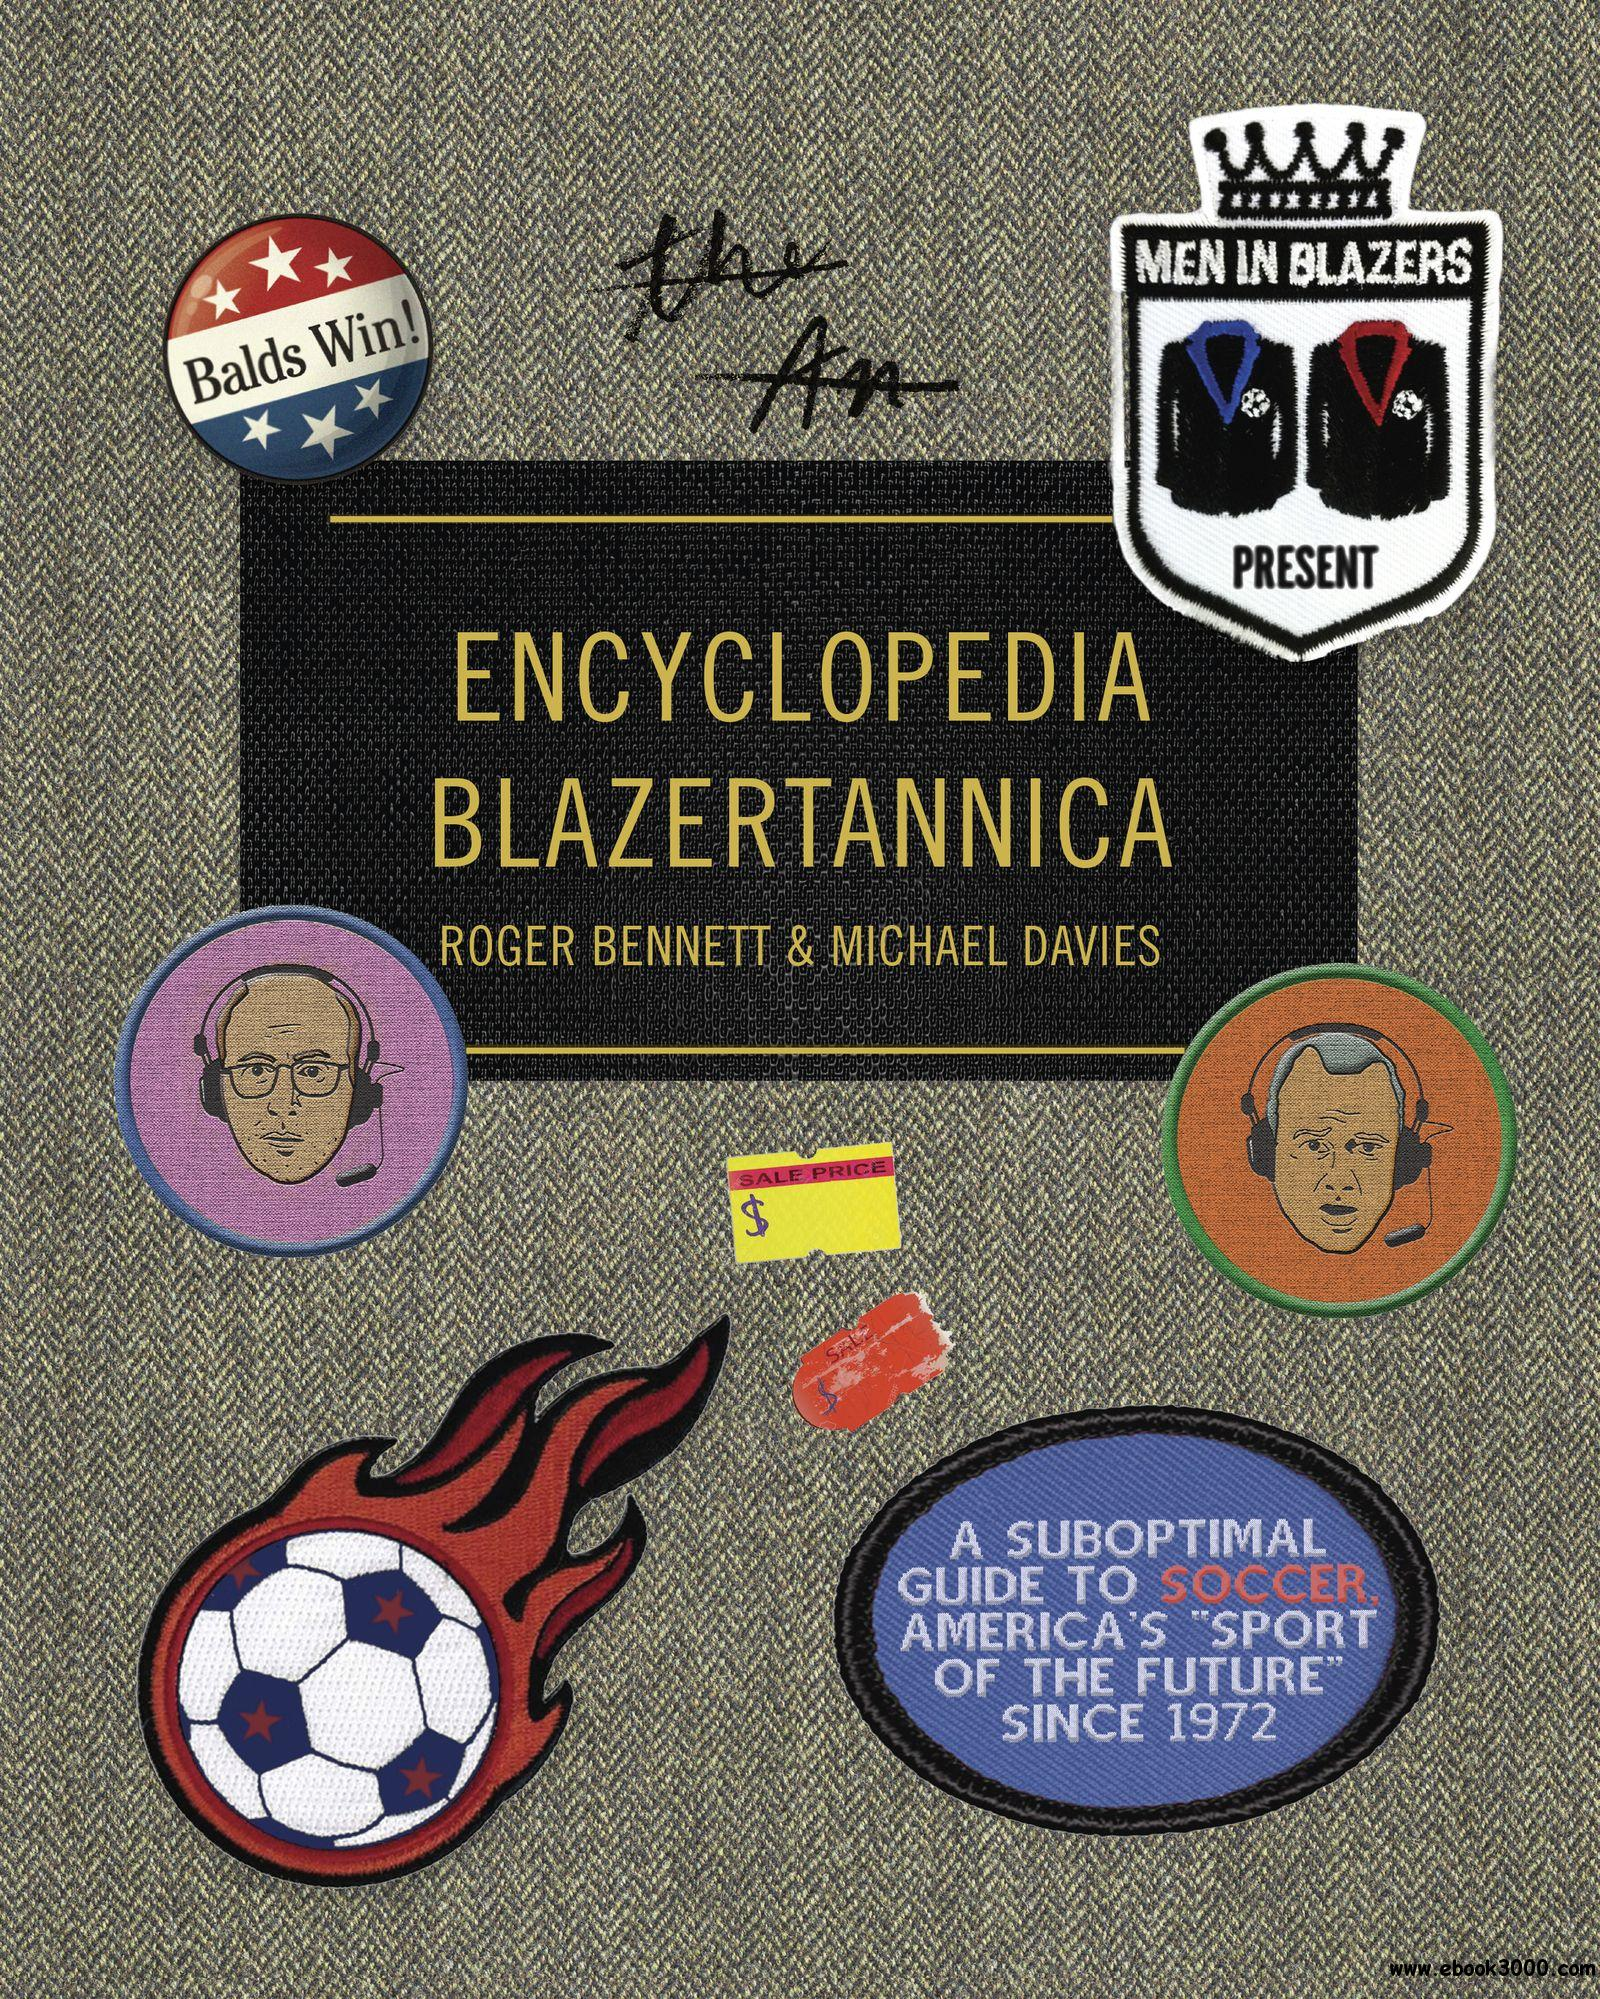 Men in Blazers Present Encyclopedia Blazertannica: A Suboptimal Guide to Soccer, America's Sport of the Future Since 1972